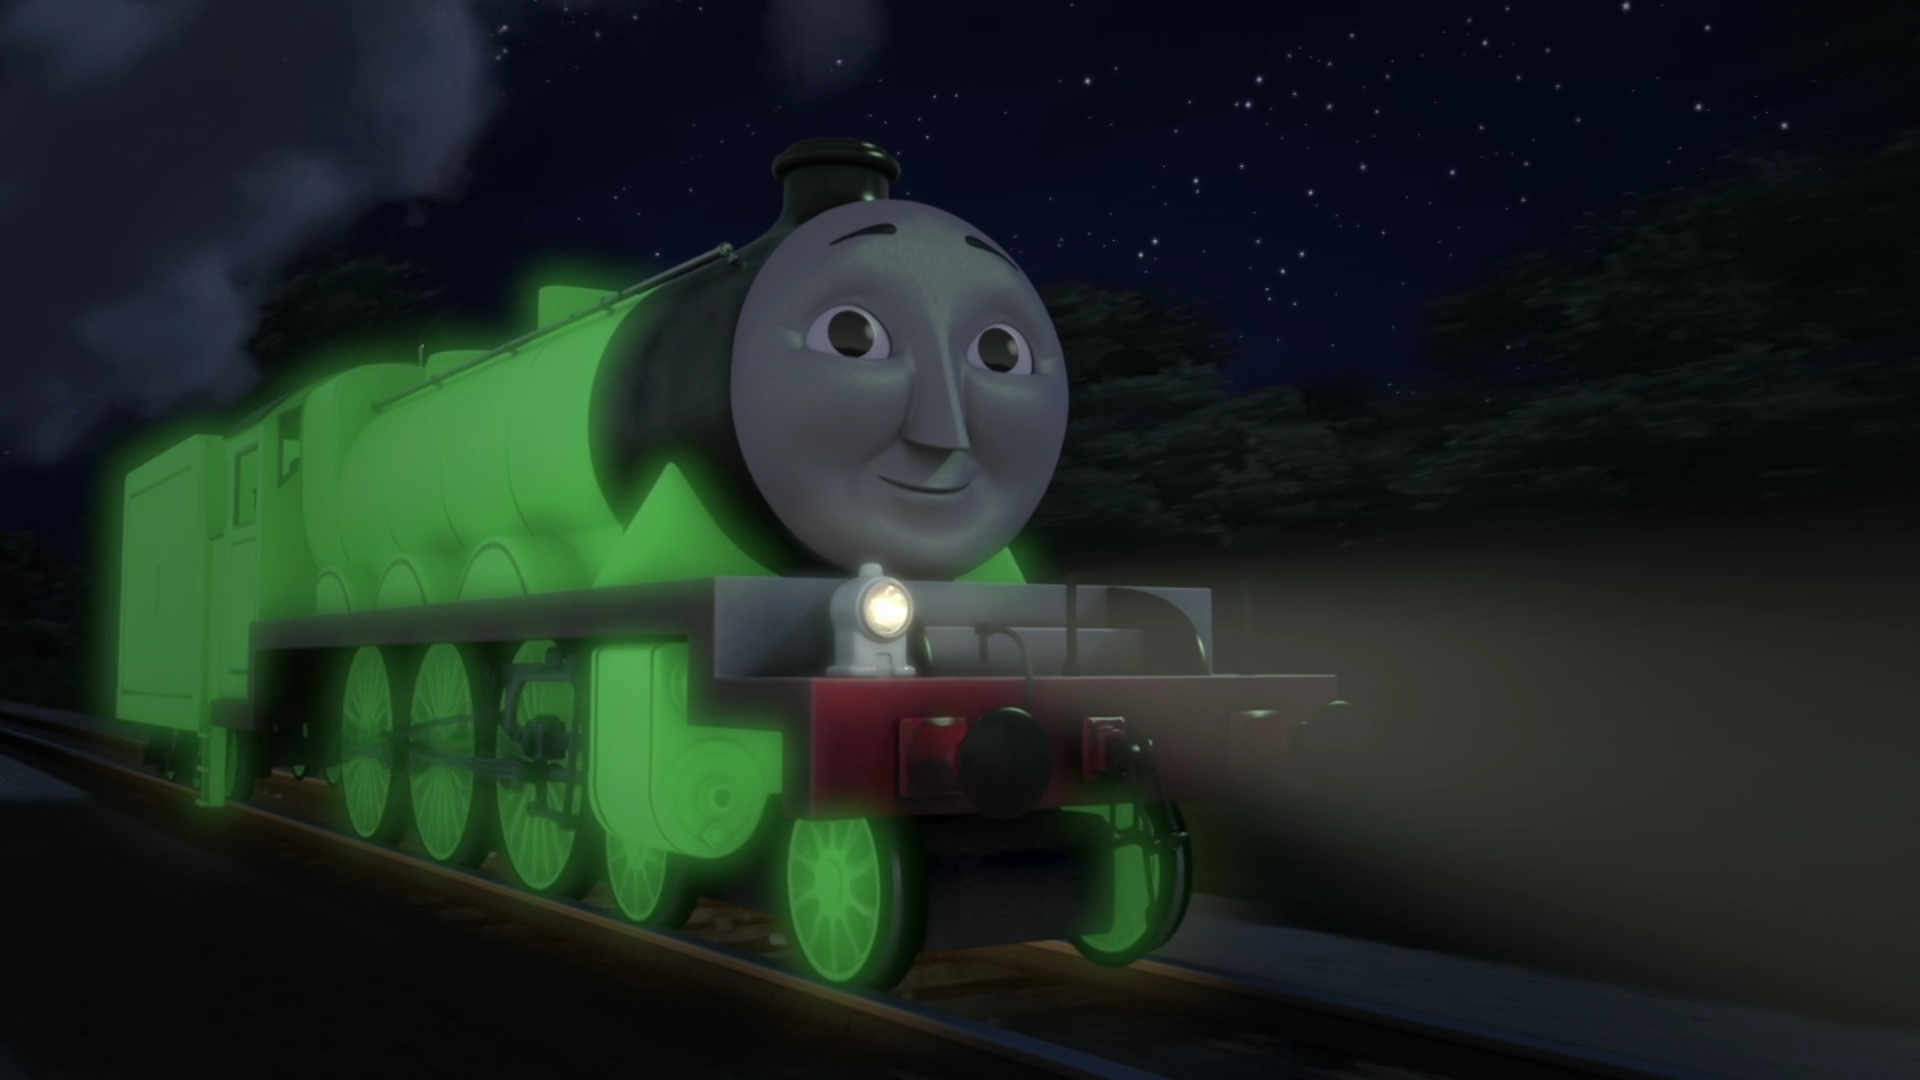 Henry Glowing In The Dark When He Was Mistakenly Painted With Glow In The Dark Paint Thomas And Friends Thomas The Tank Engine Cars Movie